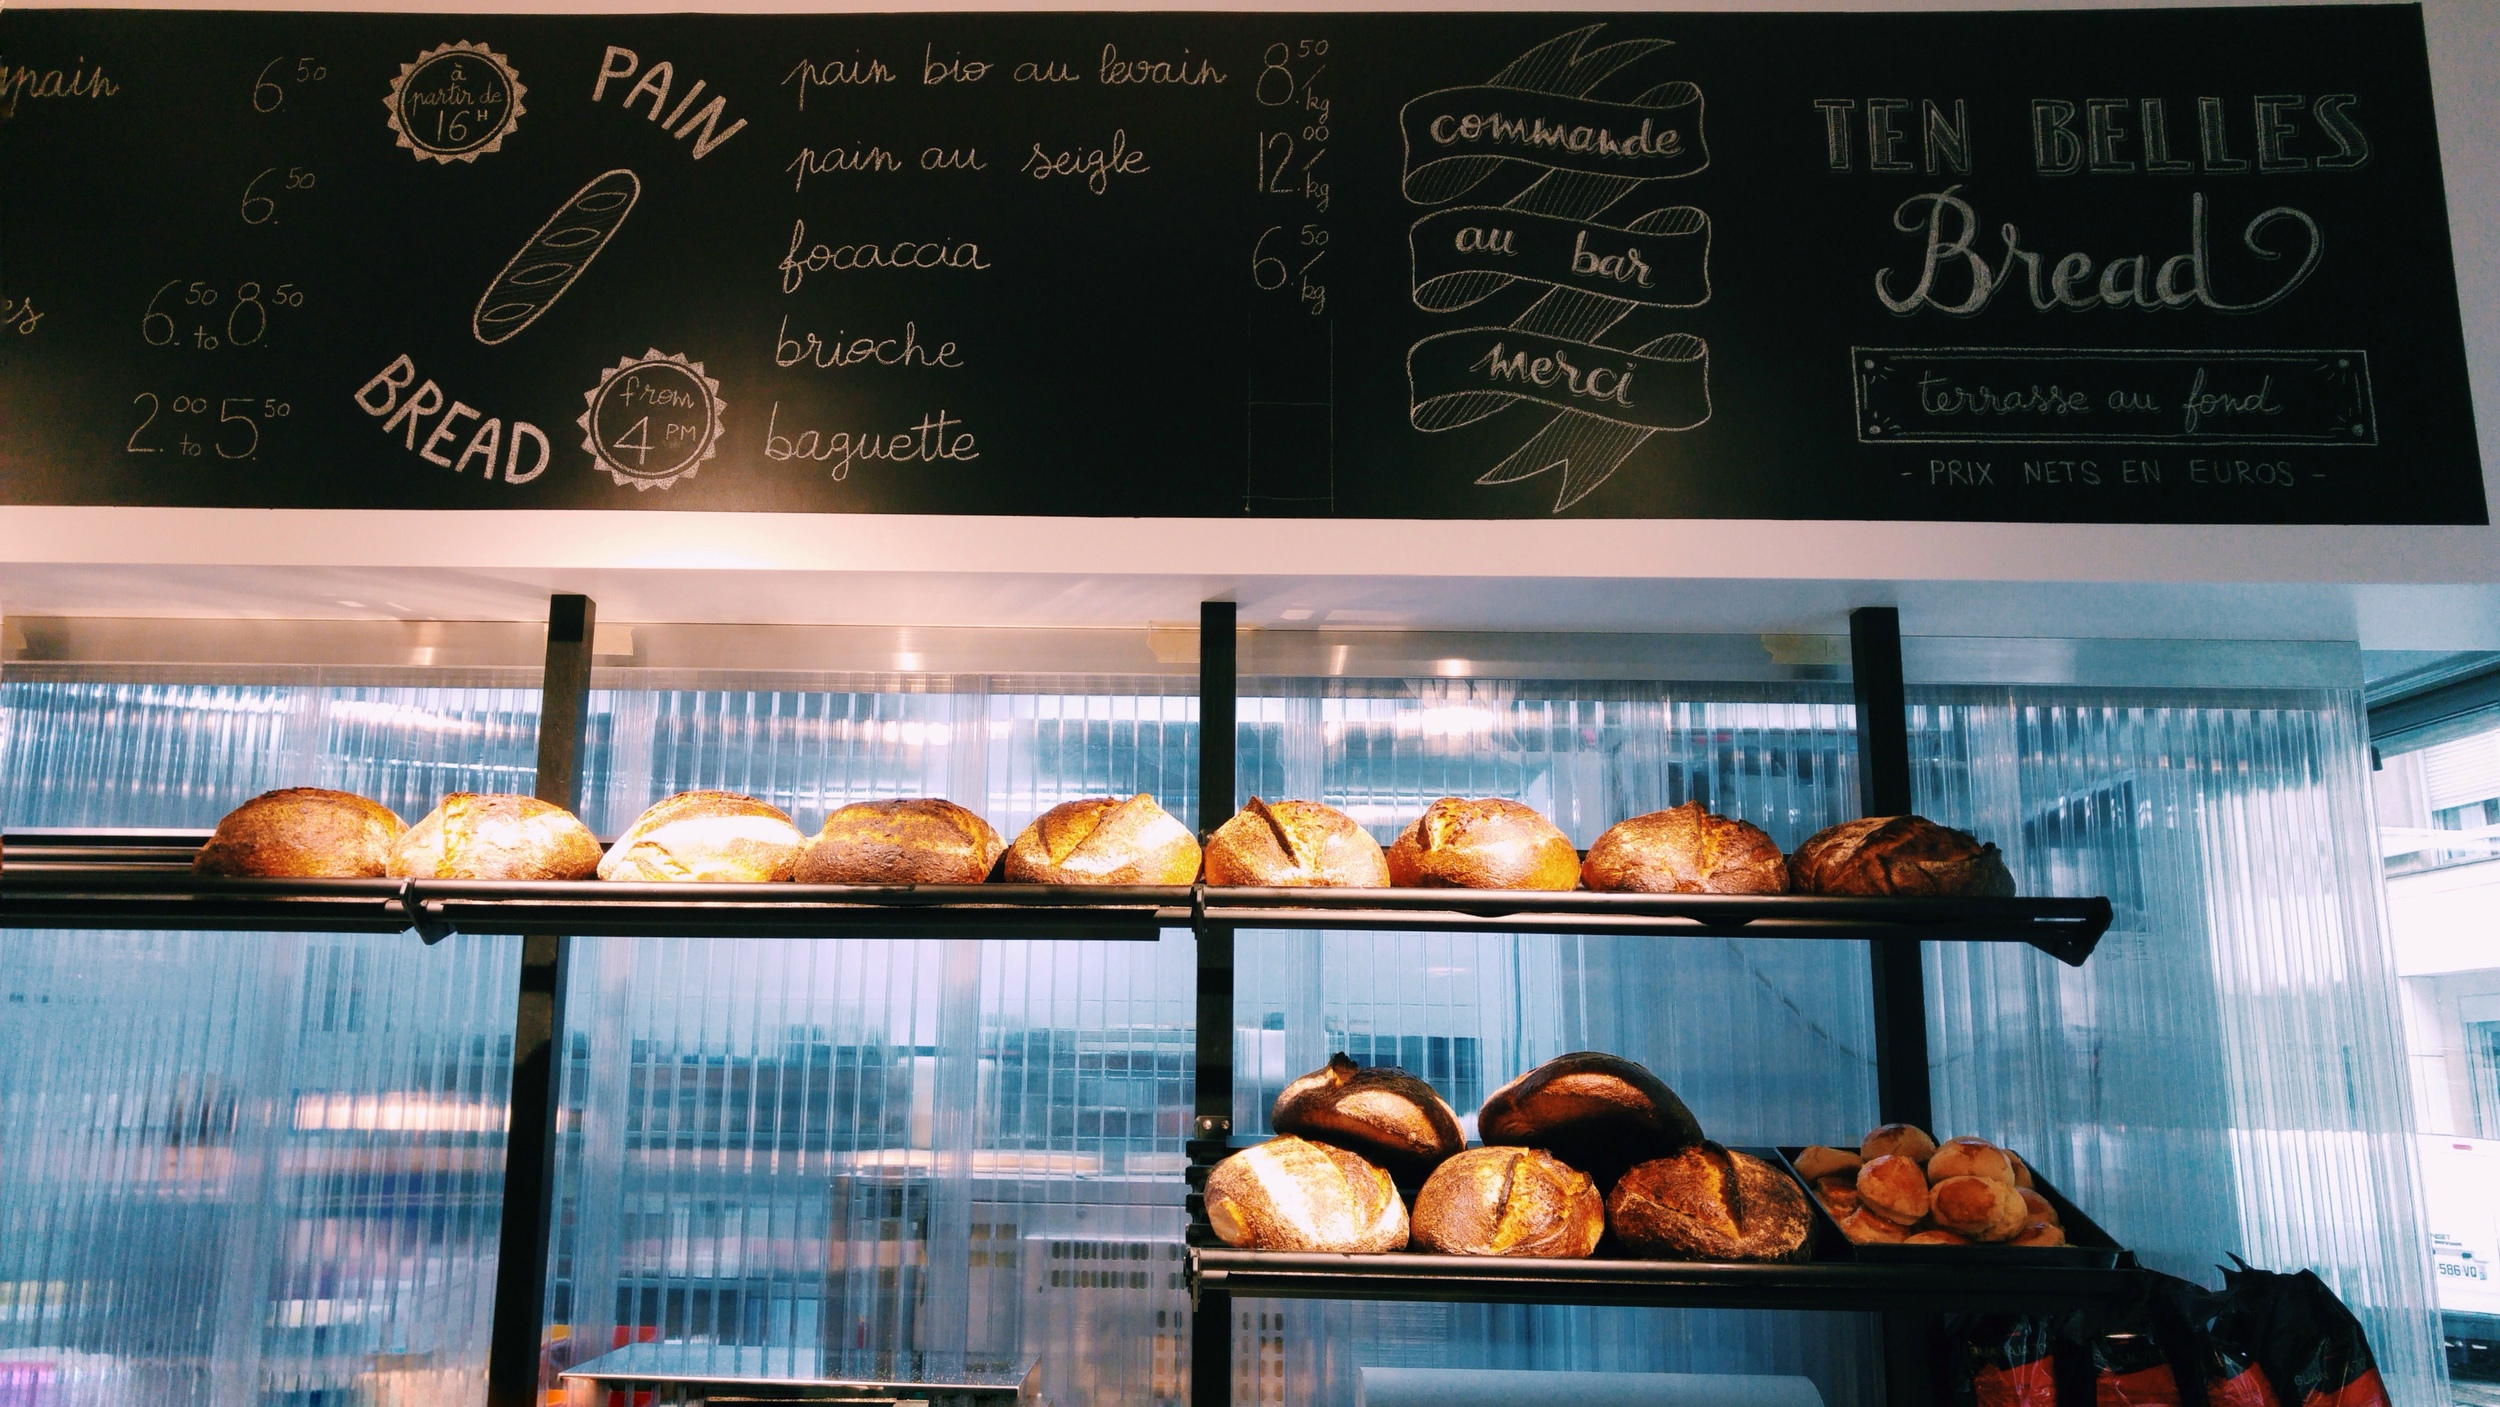 Ten belles bread insidr paris for Food bar blayney